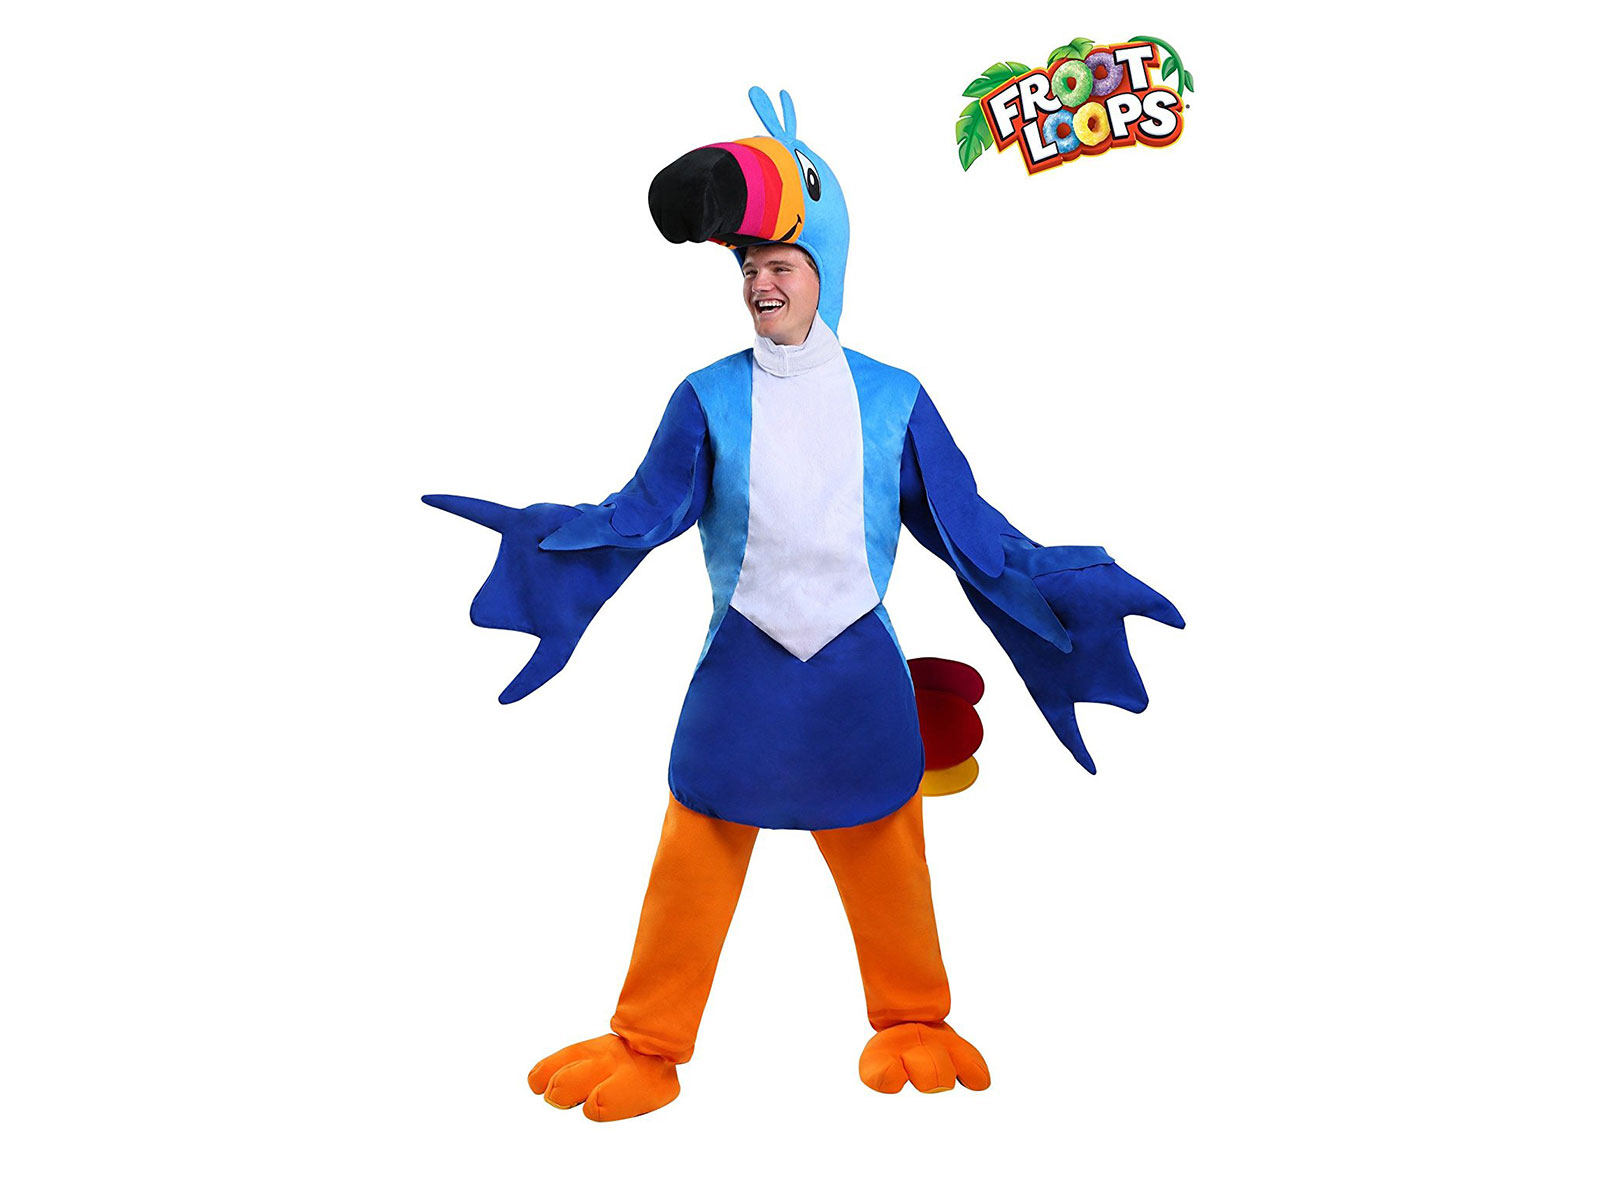 fruit loops toucan sam  sc 1 st  Food u0026 Wine Magazine & 13 Food Mascot Costumes You Can Wear This Halloween | Food u0026 Wine